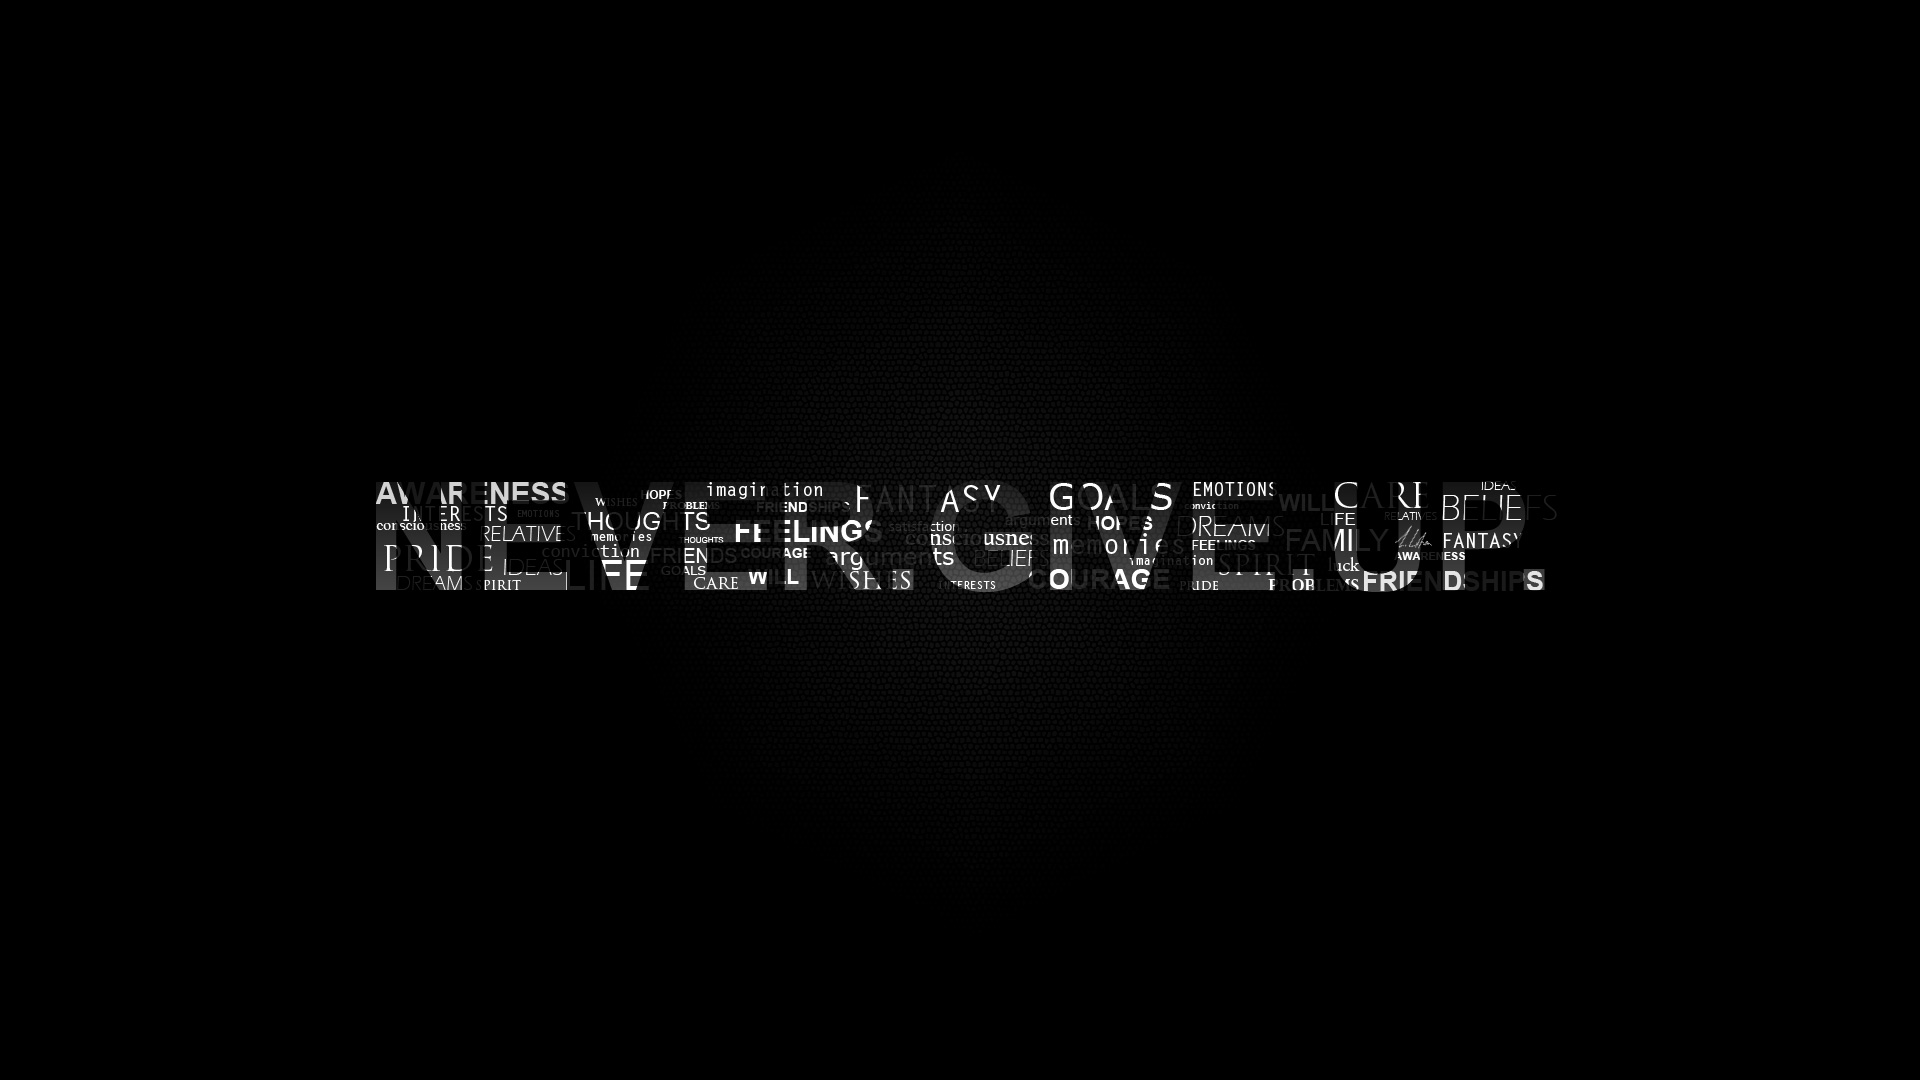 Desktop Wallpaper Motivational Quotes Never Give Up Hd Typography 4k Wallpapers Images